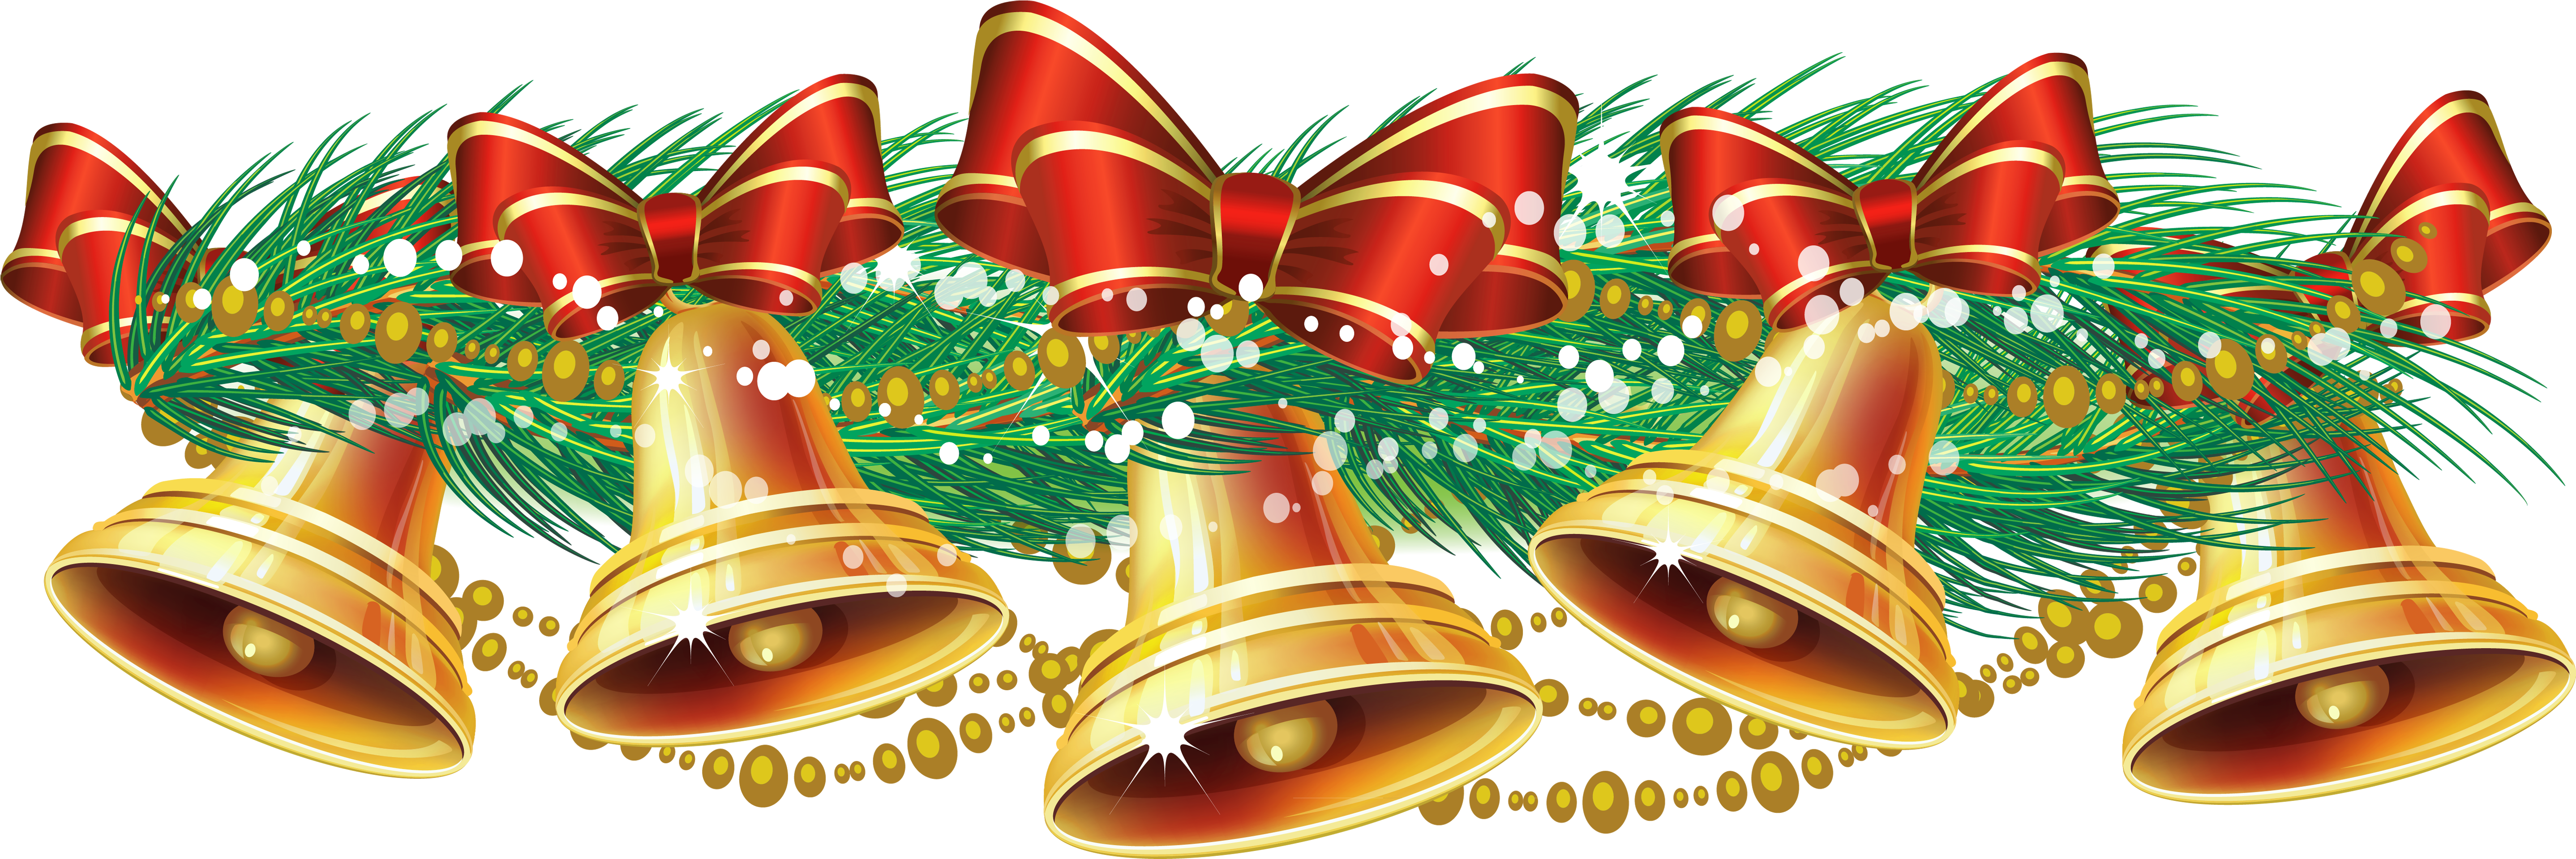 Christmas Bells Clipart.Download Graphic Transparent Stock Free Christmas Bell